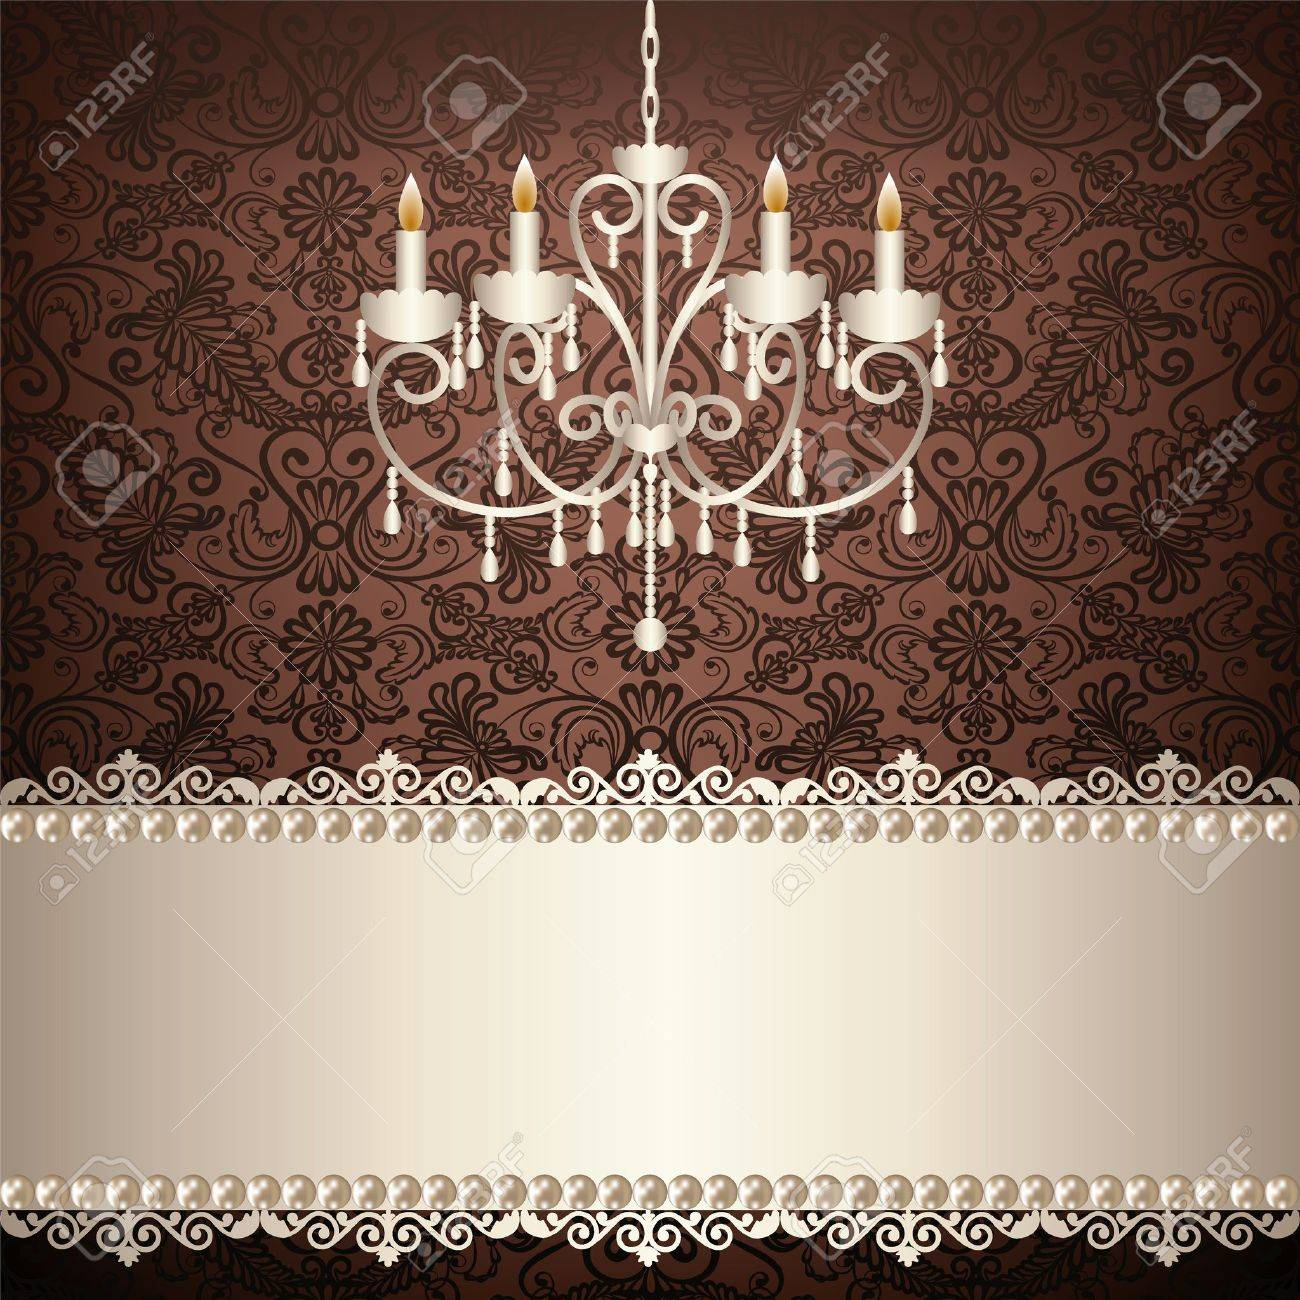 Antique chandelier light in the room with vintage wallpaper antique chandelier light in the room with vintage wallpaper stock vector 19907775 arubaitofo Gallery